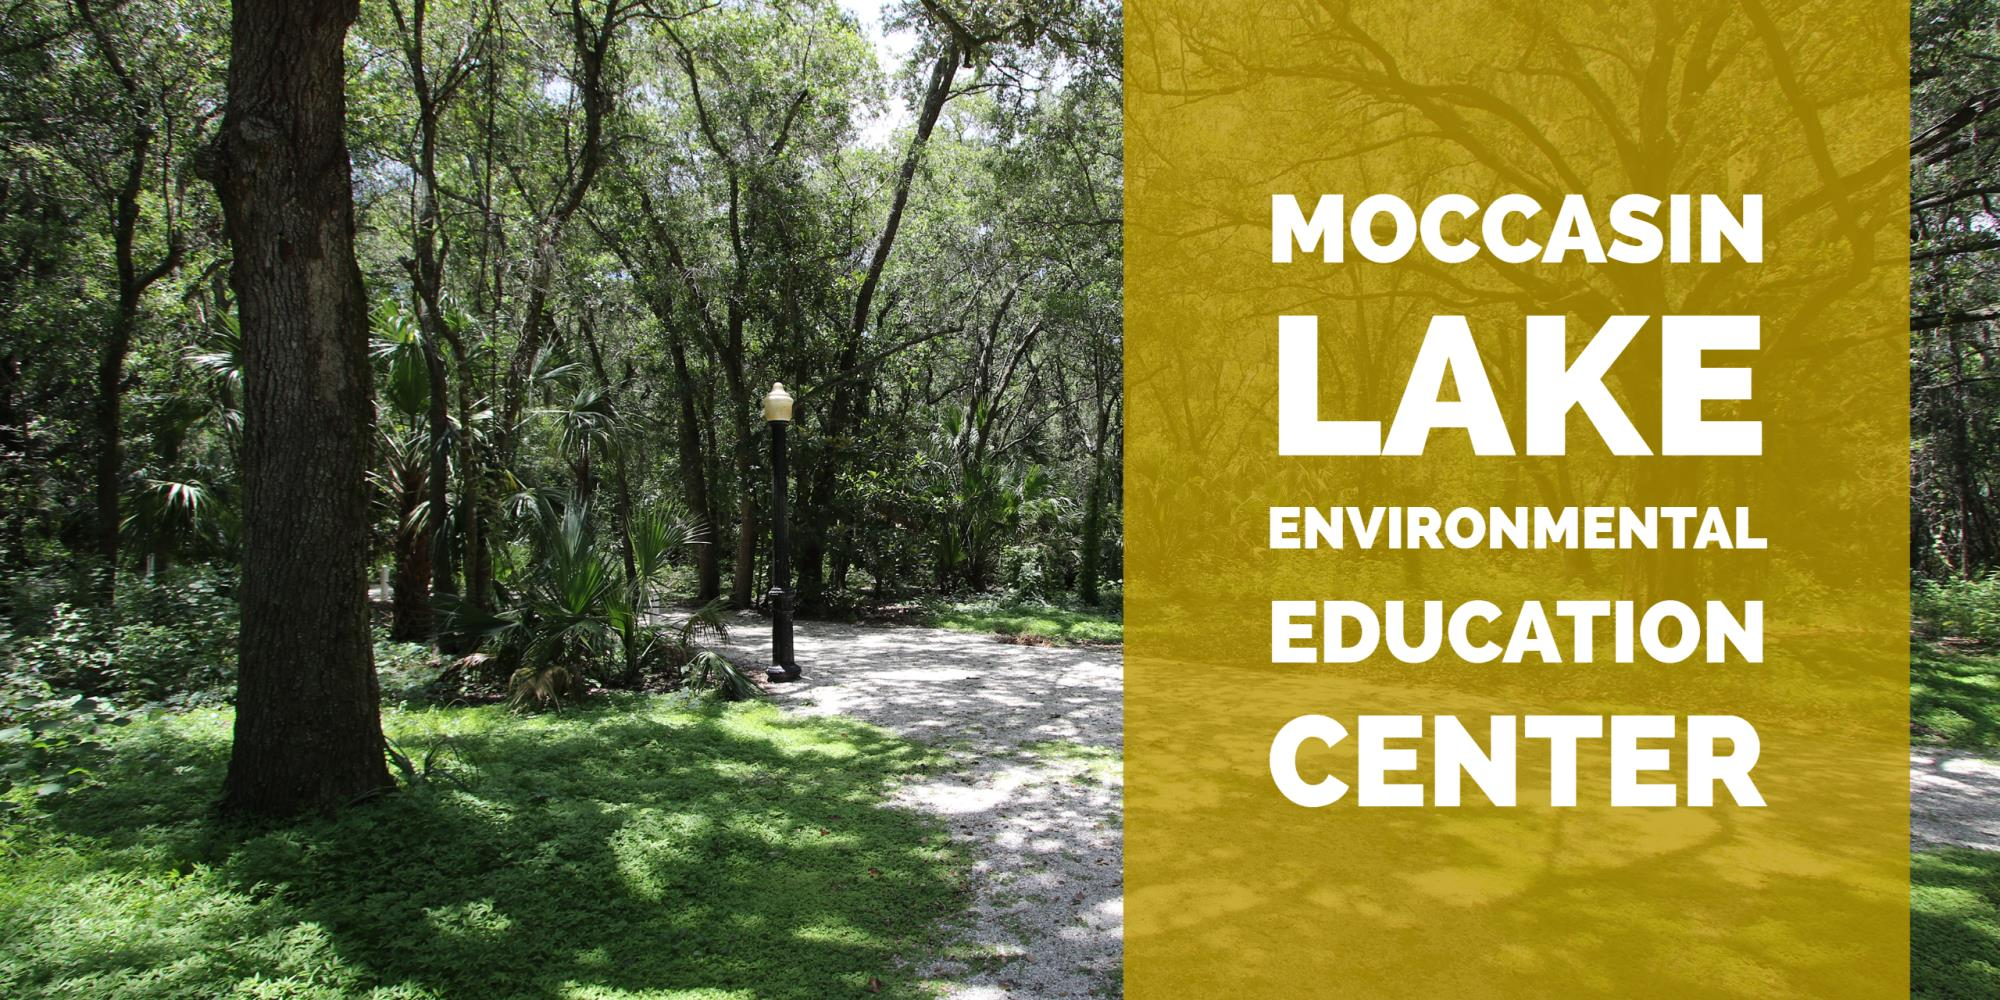 Mocassin Lake environmental Education Center